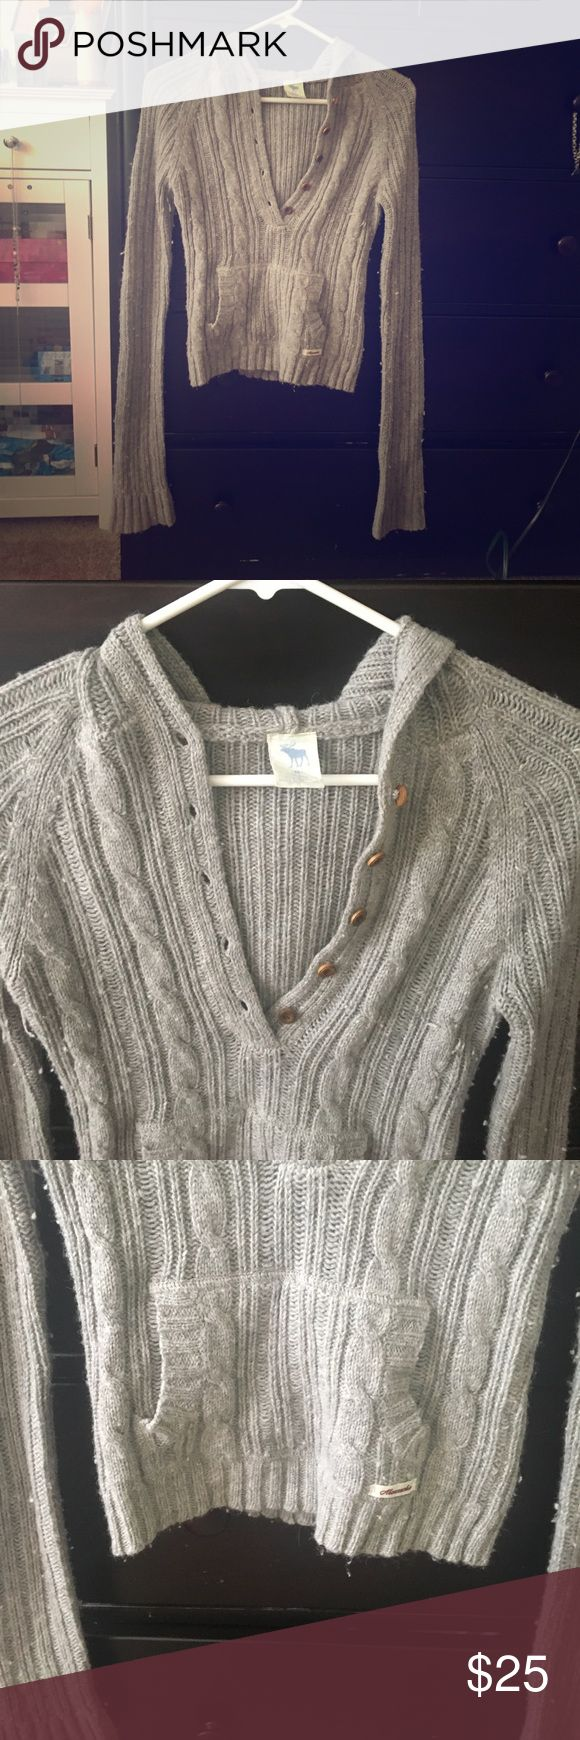 ABERCROMBIE & FITCH hoodie Abercrombie and Fitch thin hoodie. GORGEOUS!! Button up. Great for layering with a tank top!!😍 Abercrombie & Fitch Tops Sweatshirts & Hoodies